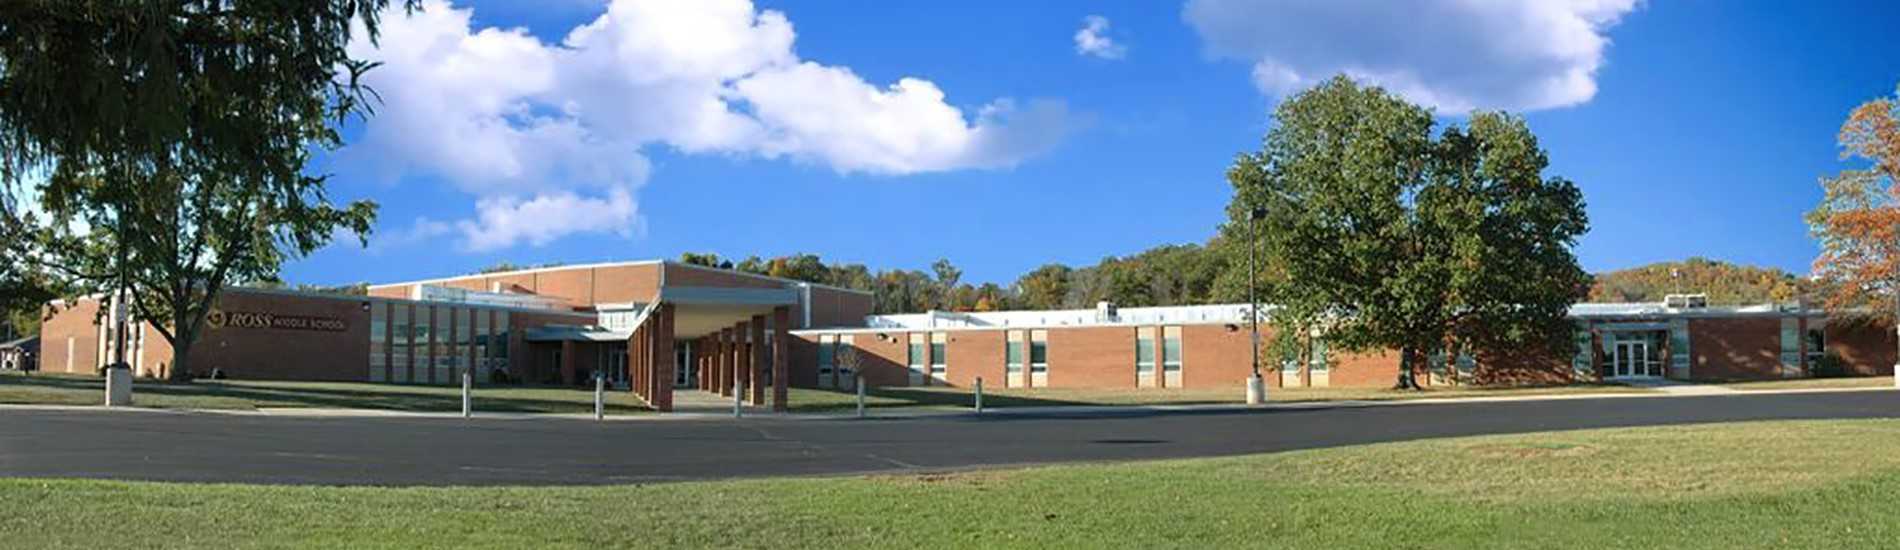 A photo of Ross Middle School